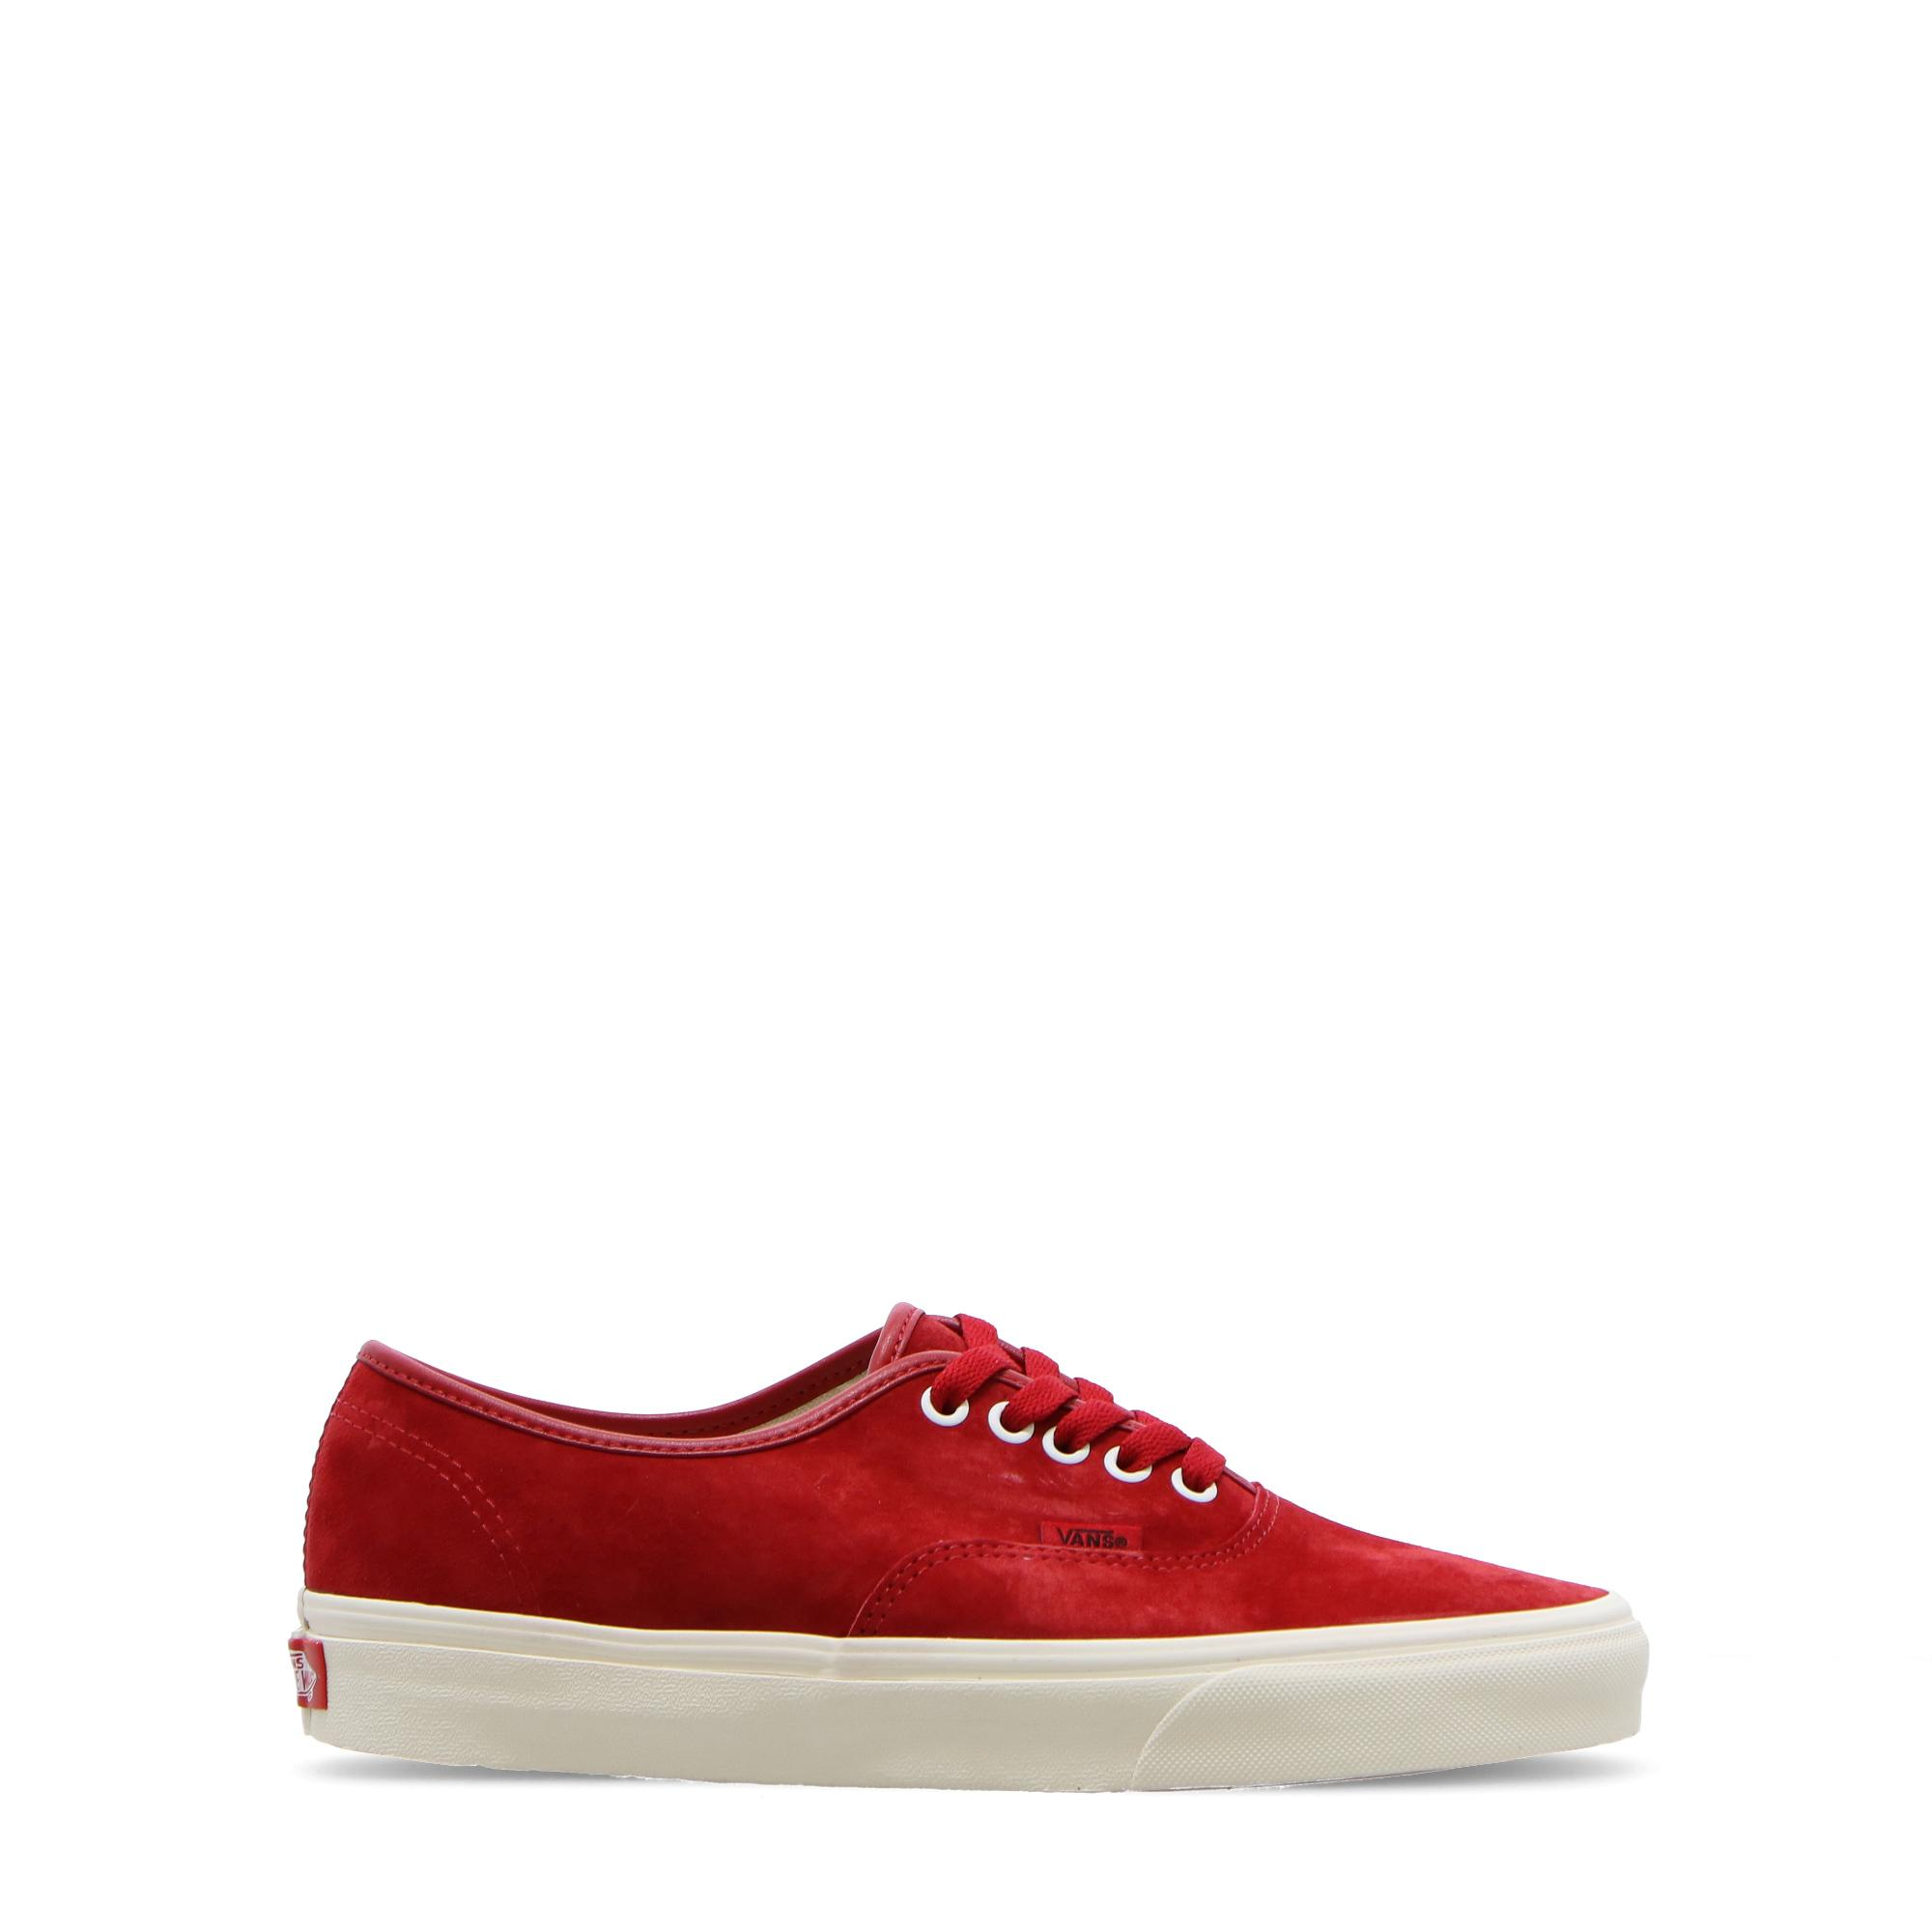 Vans Ua Authenitc (pig suede) chili pepper white